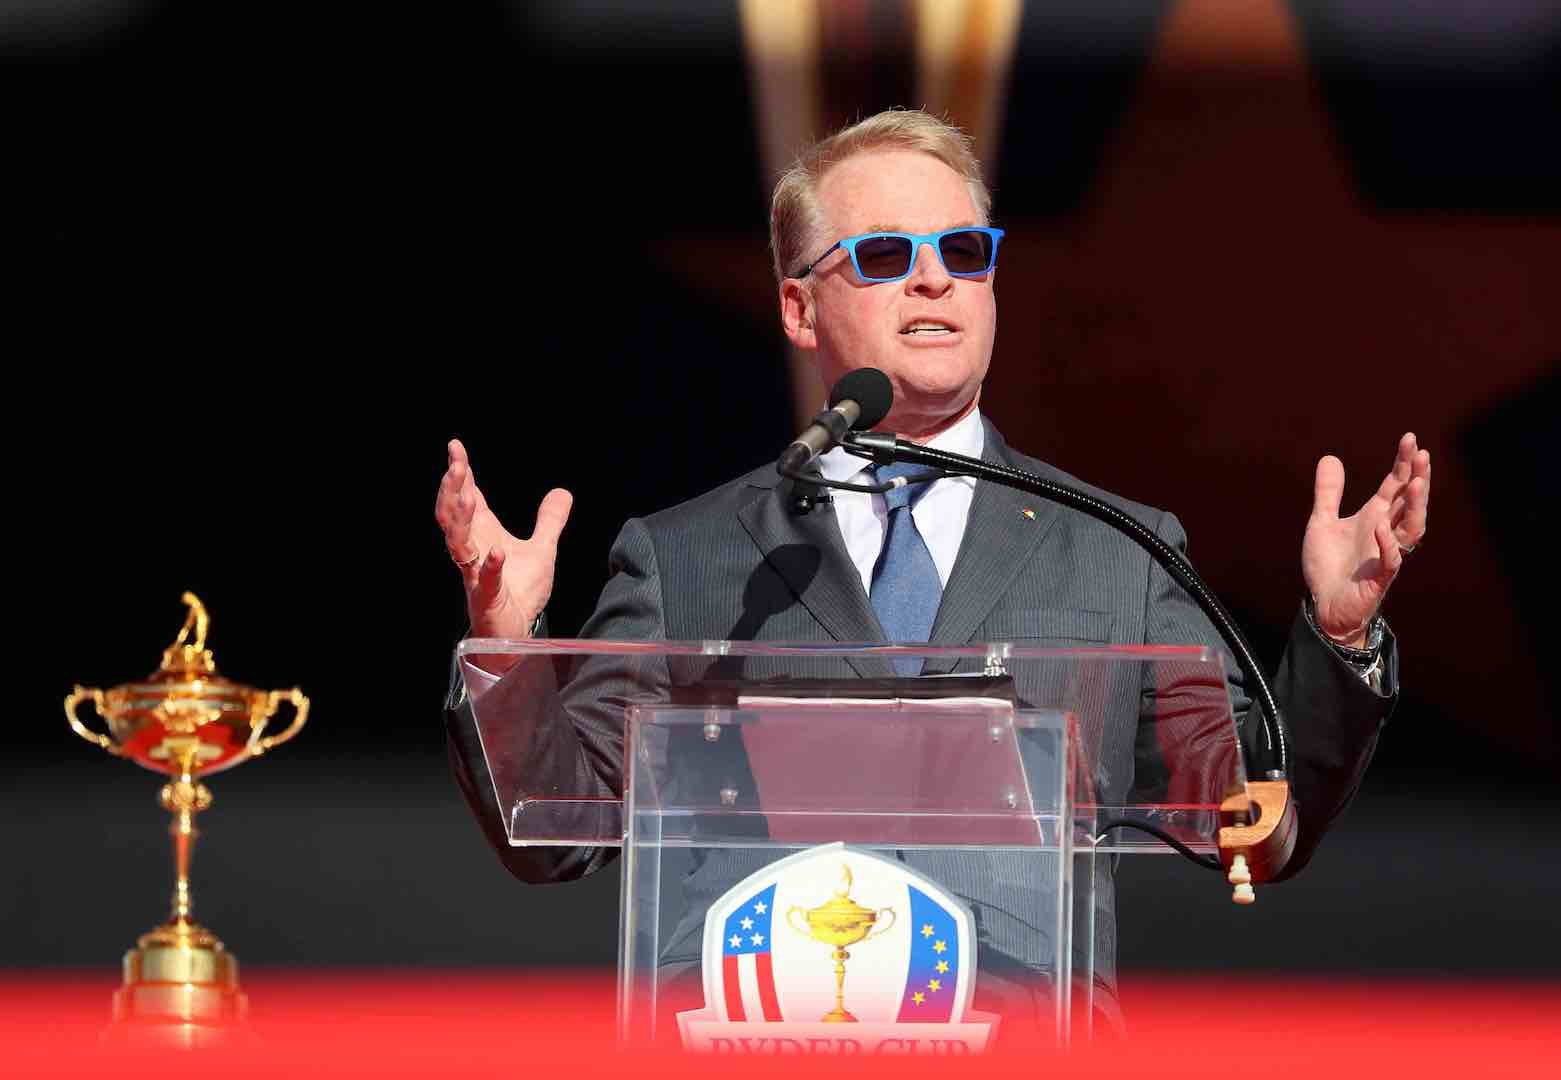 Keith Pelley prepared to make Ryder Cup selection changes